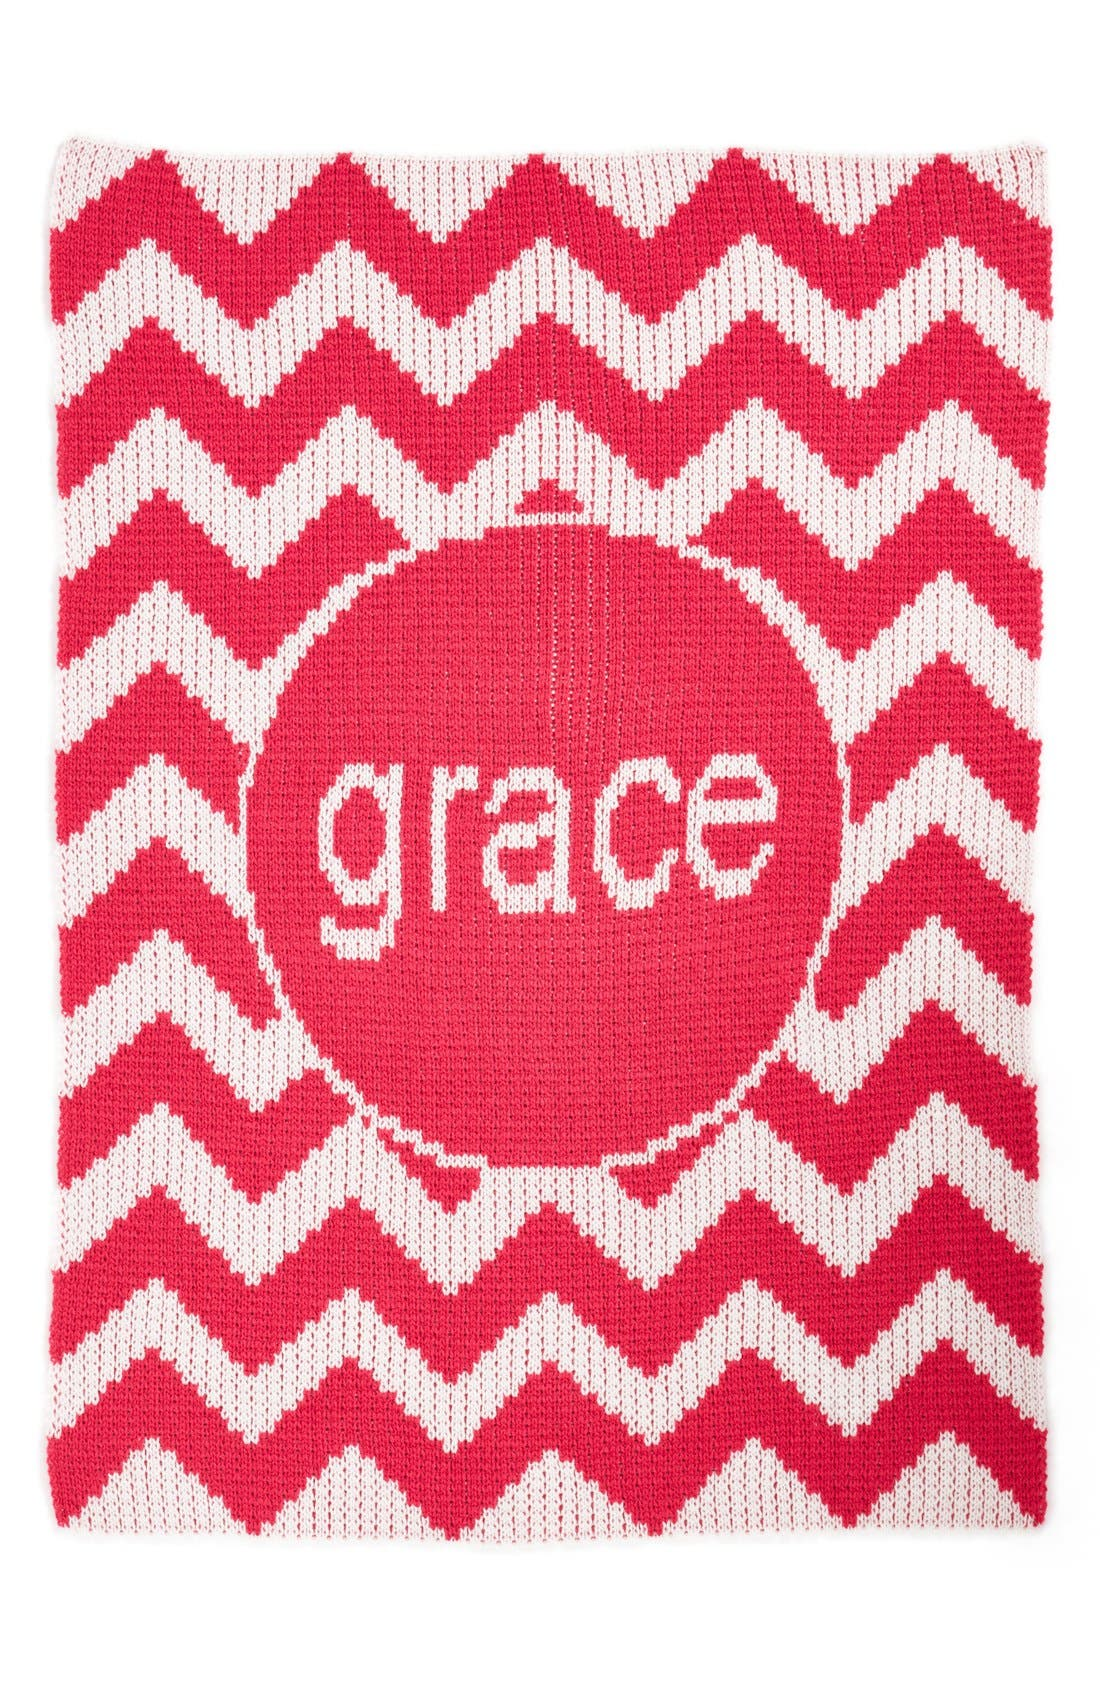 'Chevron - Large' Personalized Blanket,                             Main thumbnail 1, color,                             Hot Pink/ White